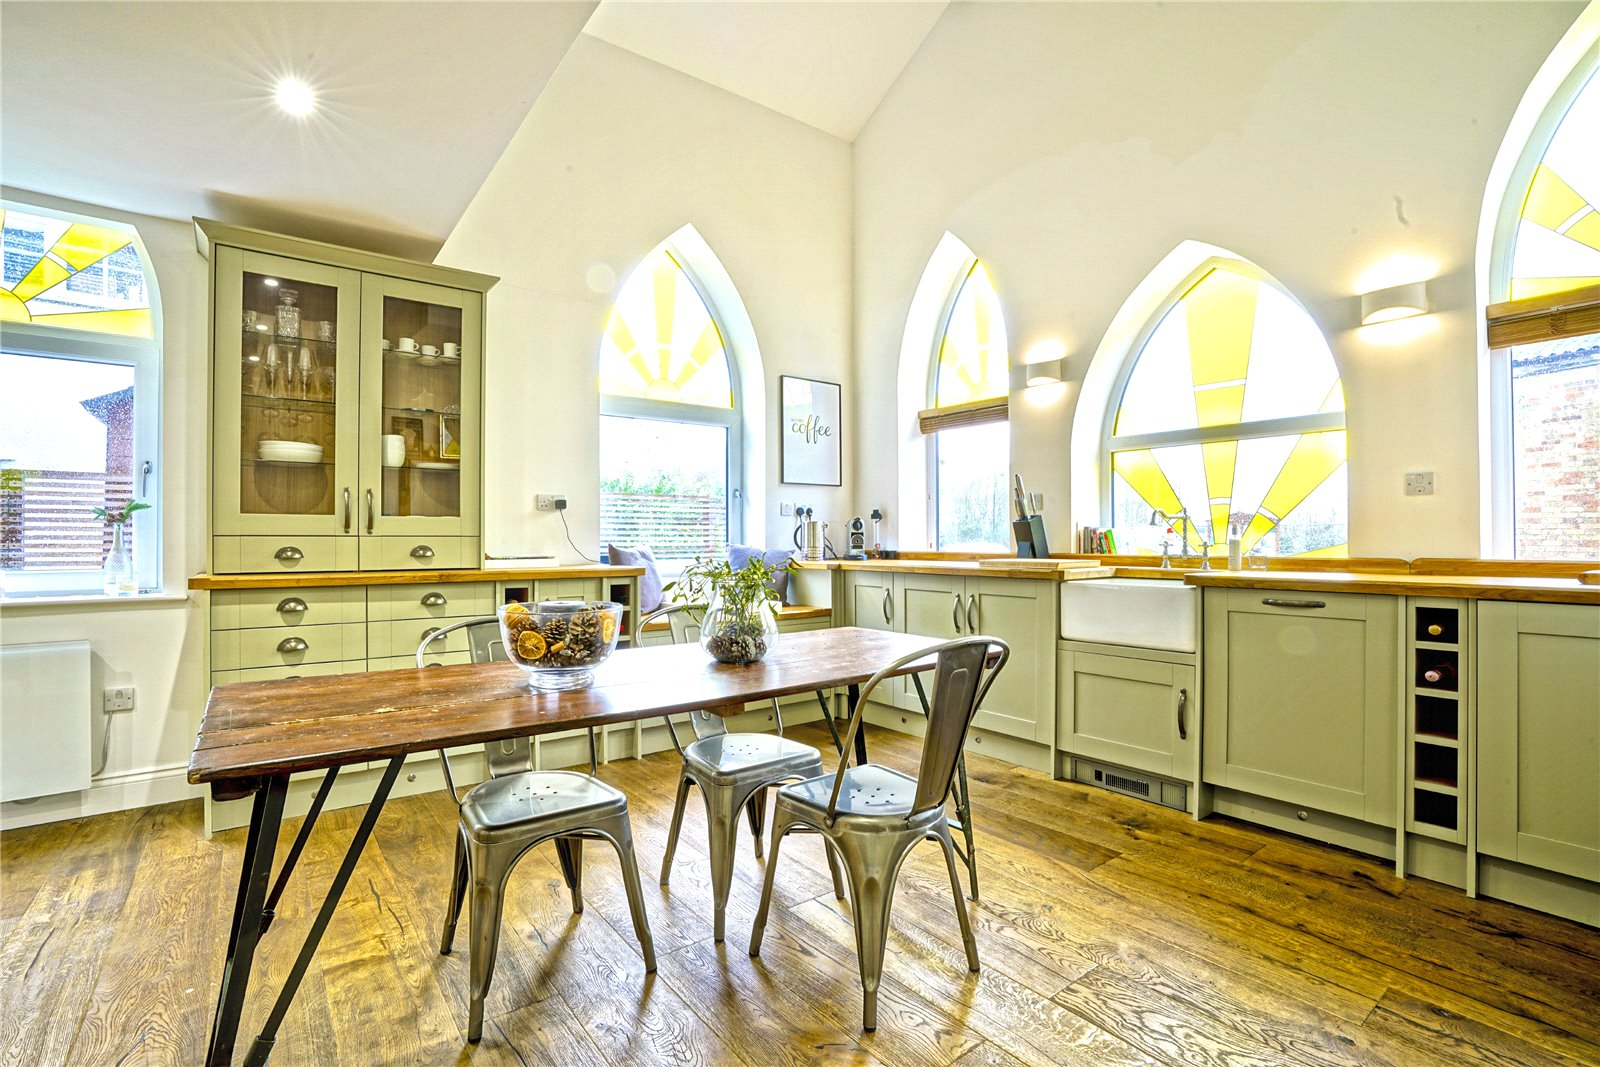 4 bed house for sale in Offord D'Arcy  - Property Image 8